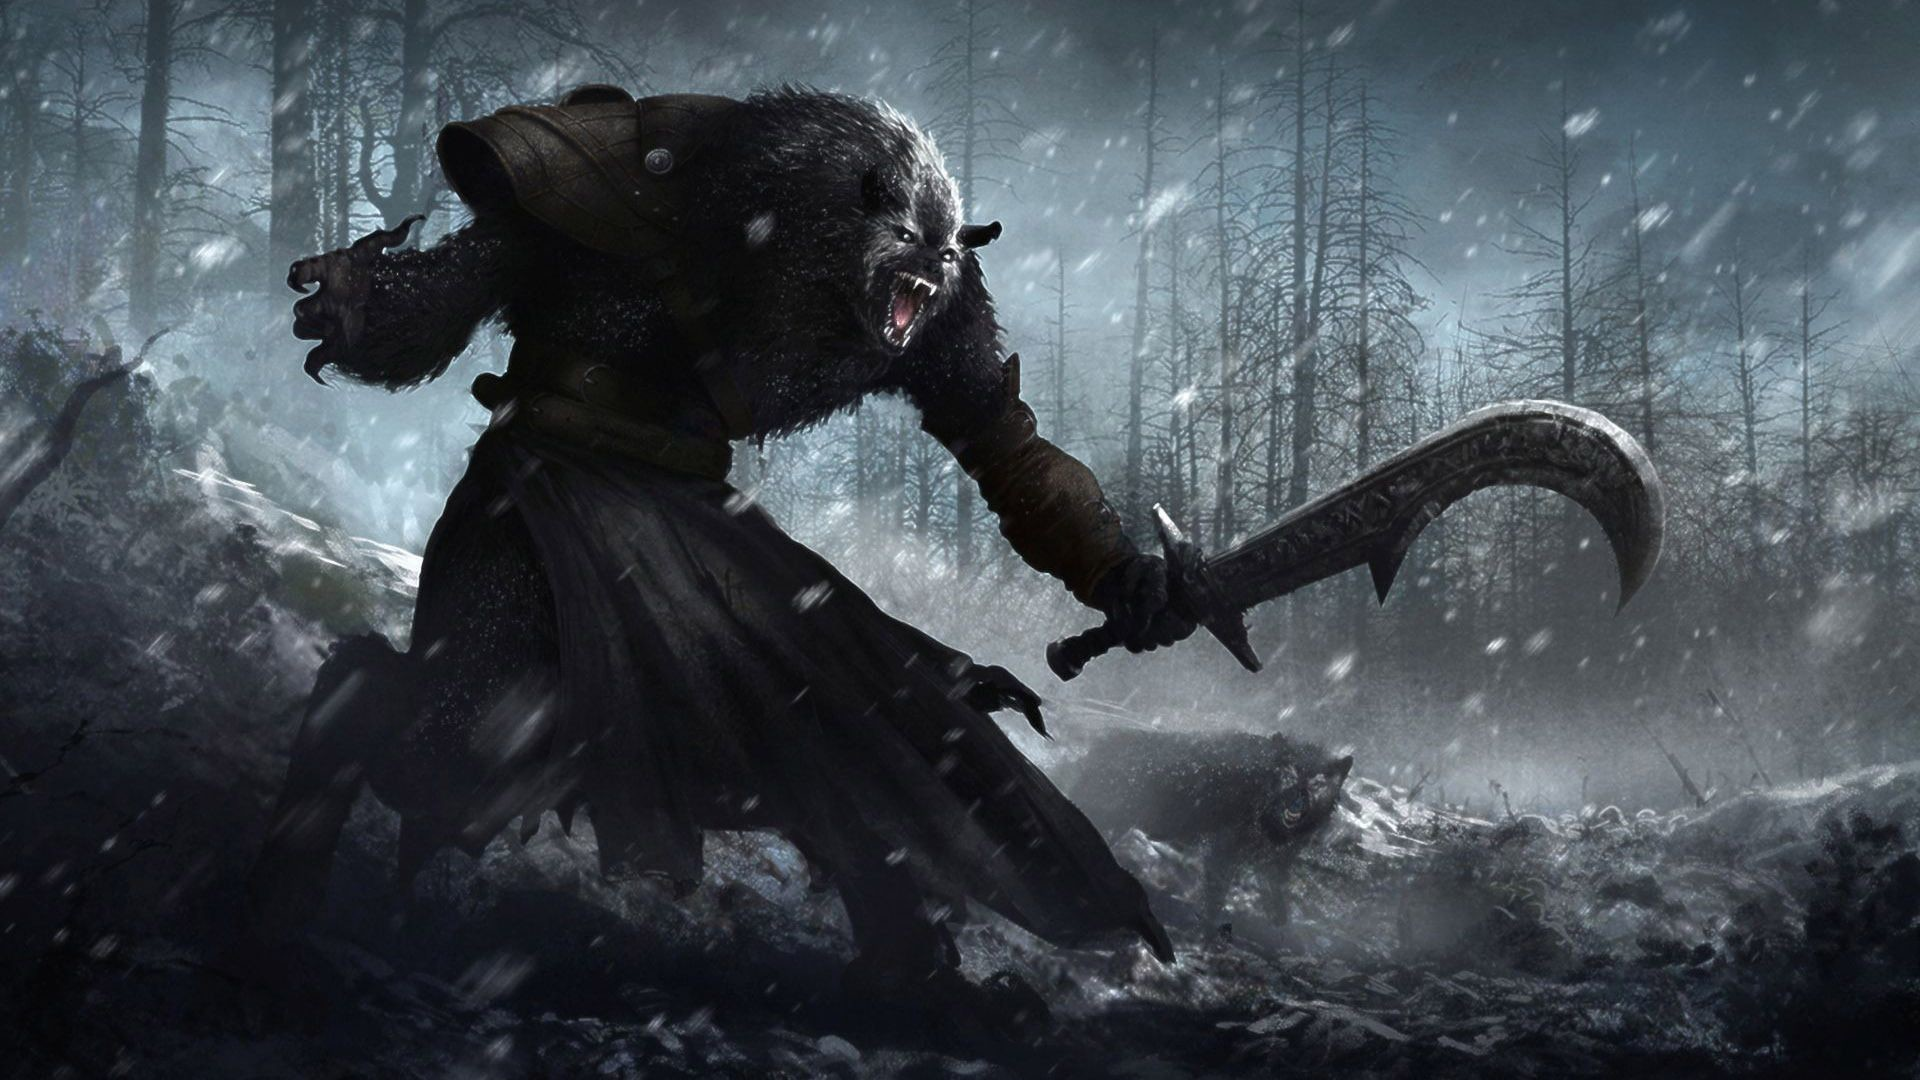 1920x1080 Werewolf with a machete, fantasy,  HD Wallpaper and FREE .